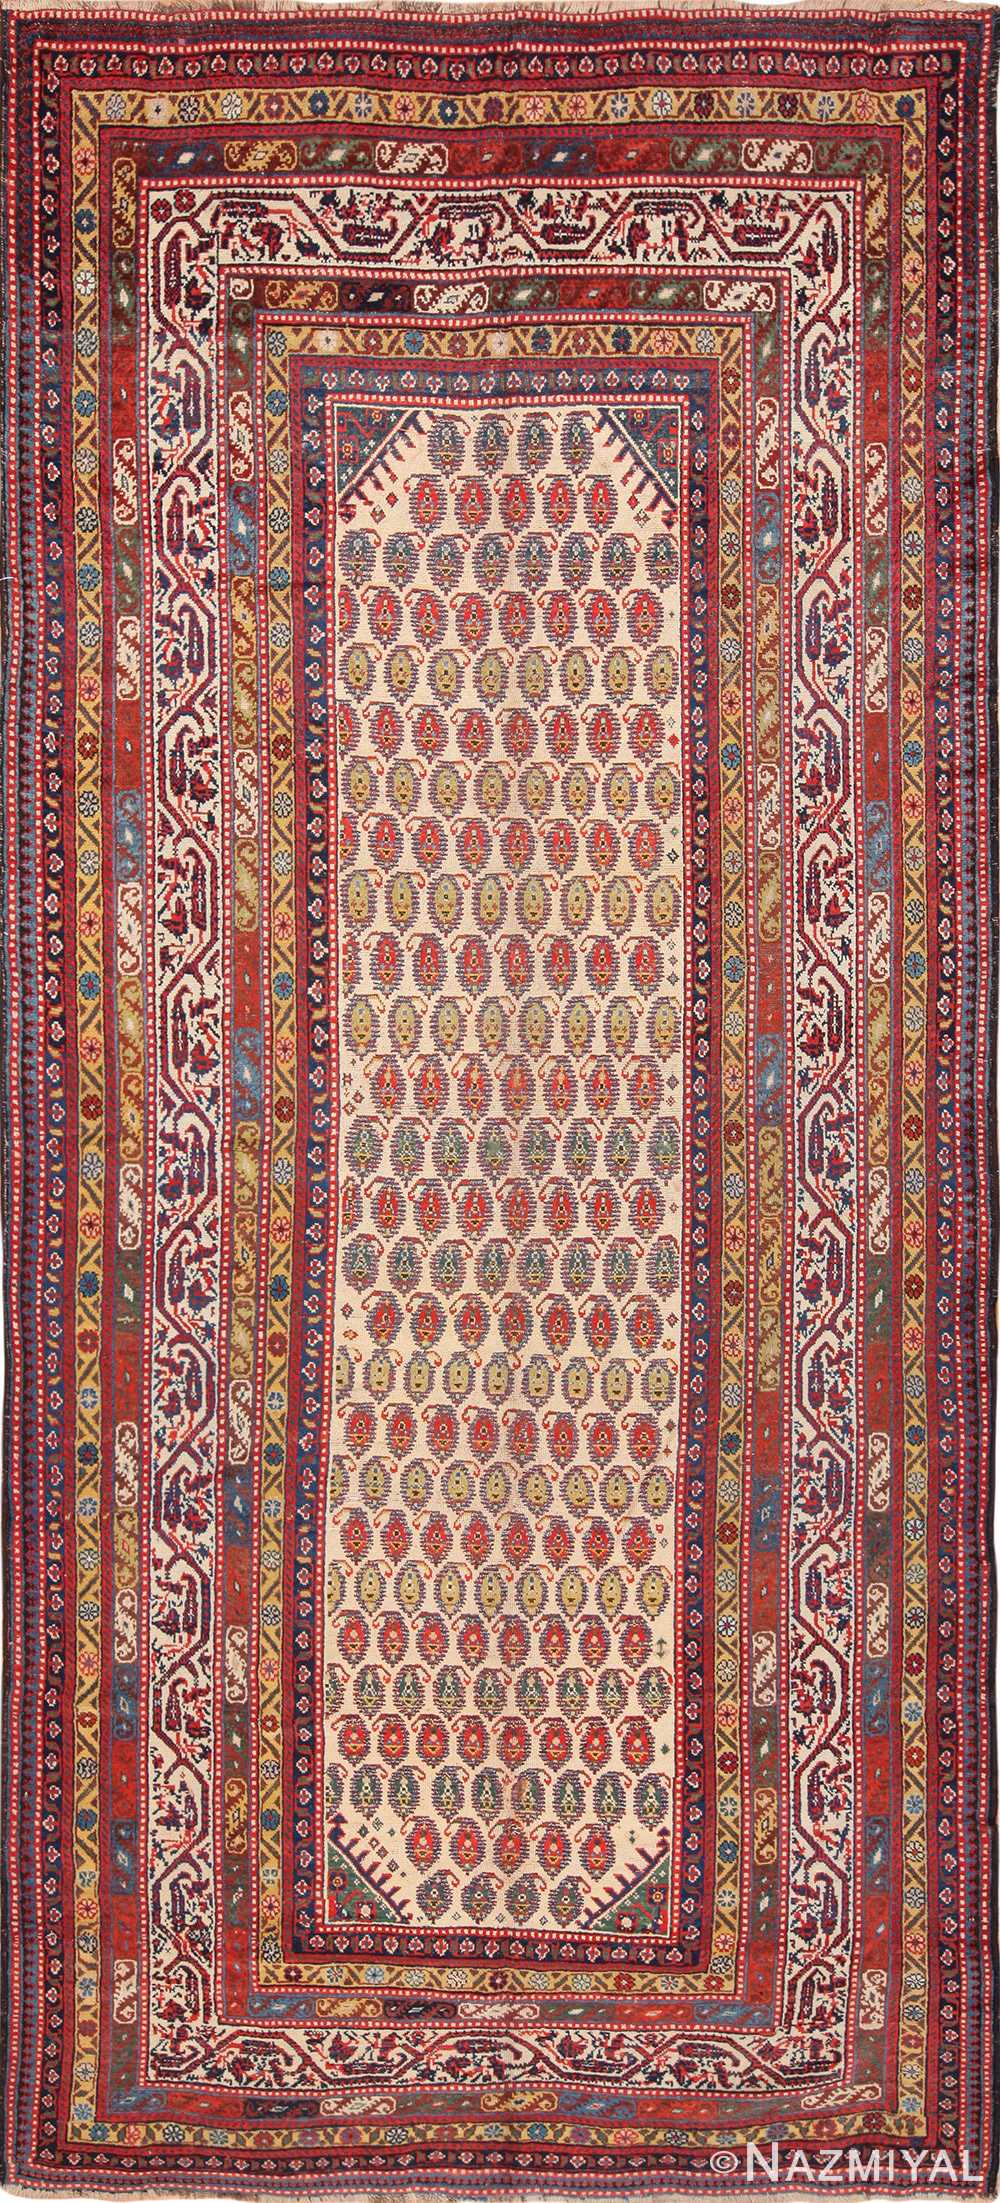 Wide Hallway Antique Tribal Persian Qashqai Runner Rug 49425 by Nazmiyal